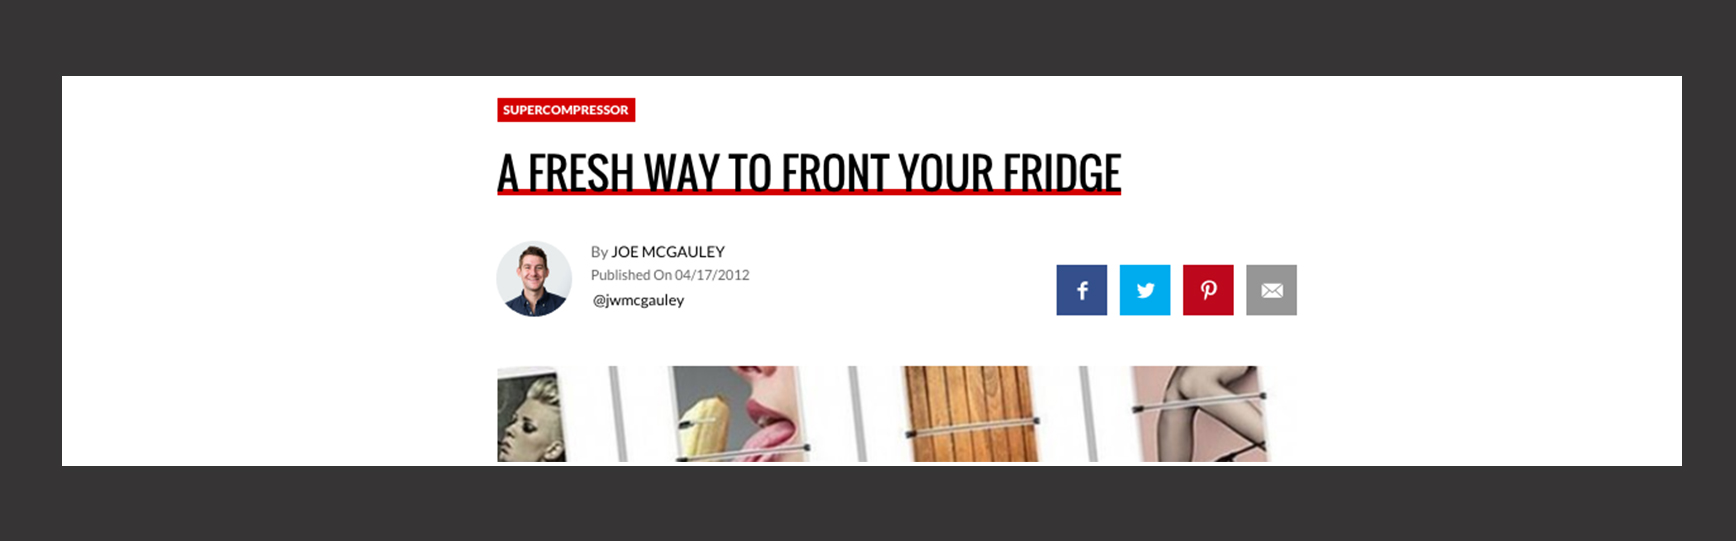 A Fresh Way To Front Your Fridge